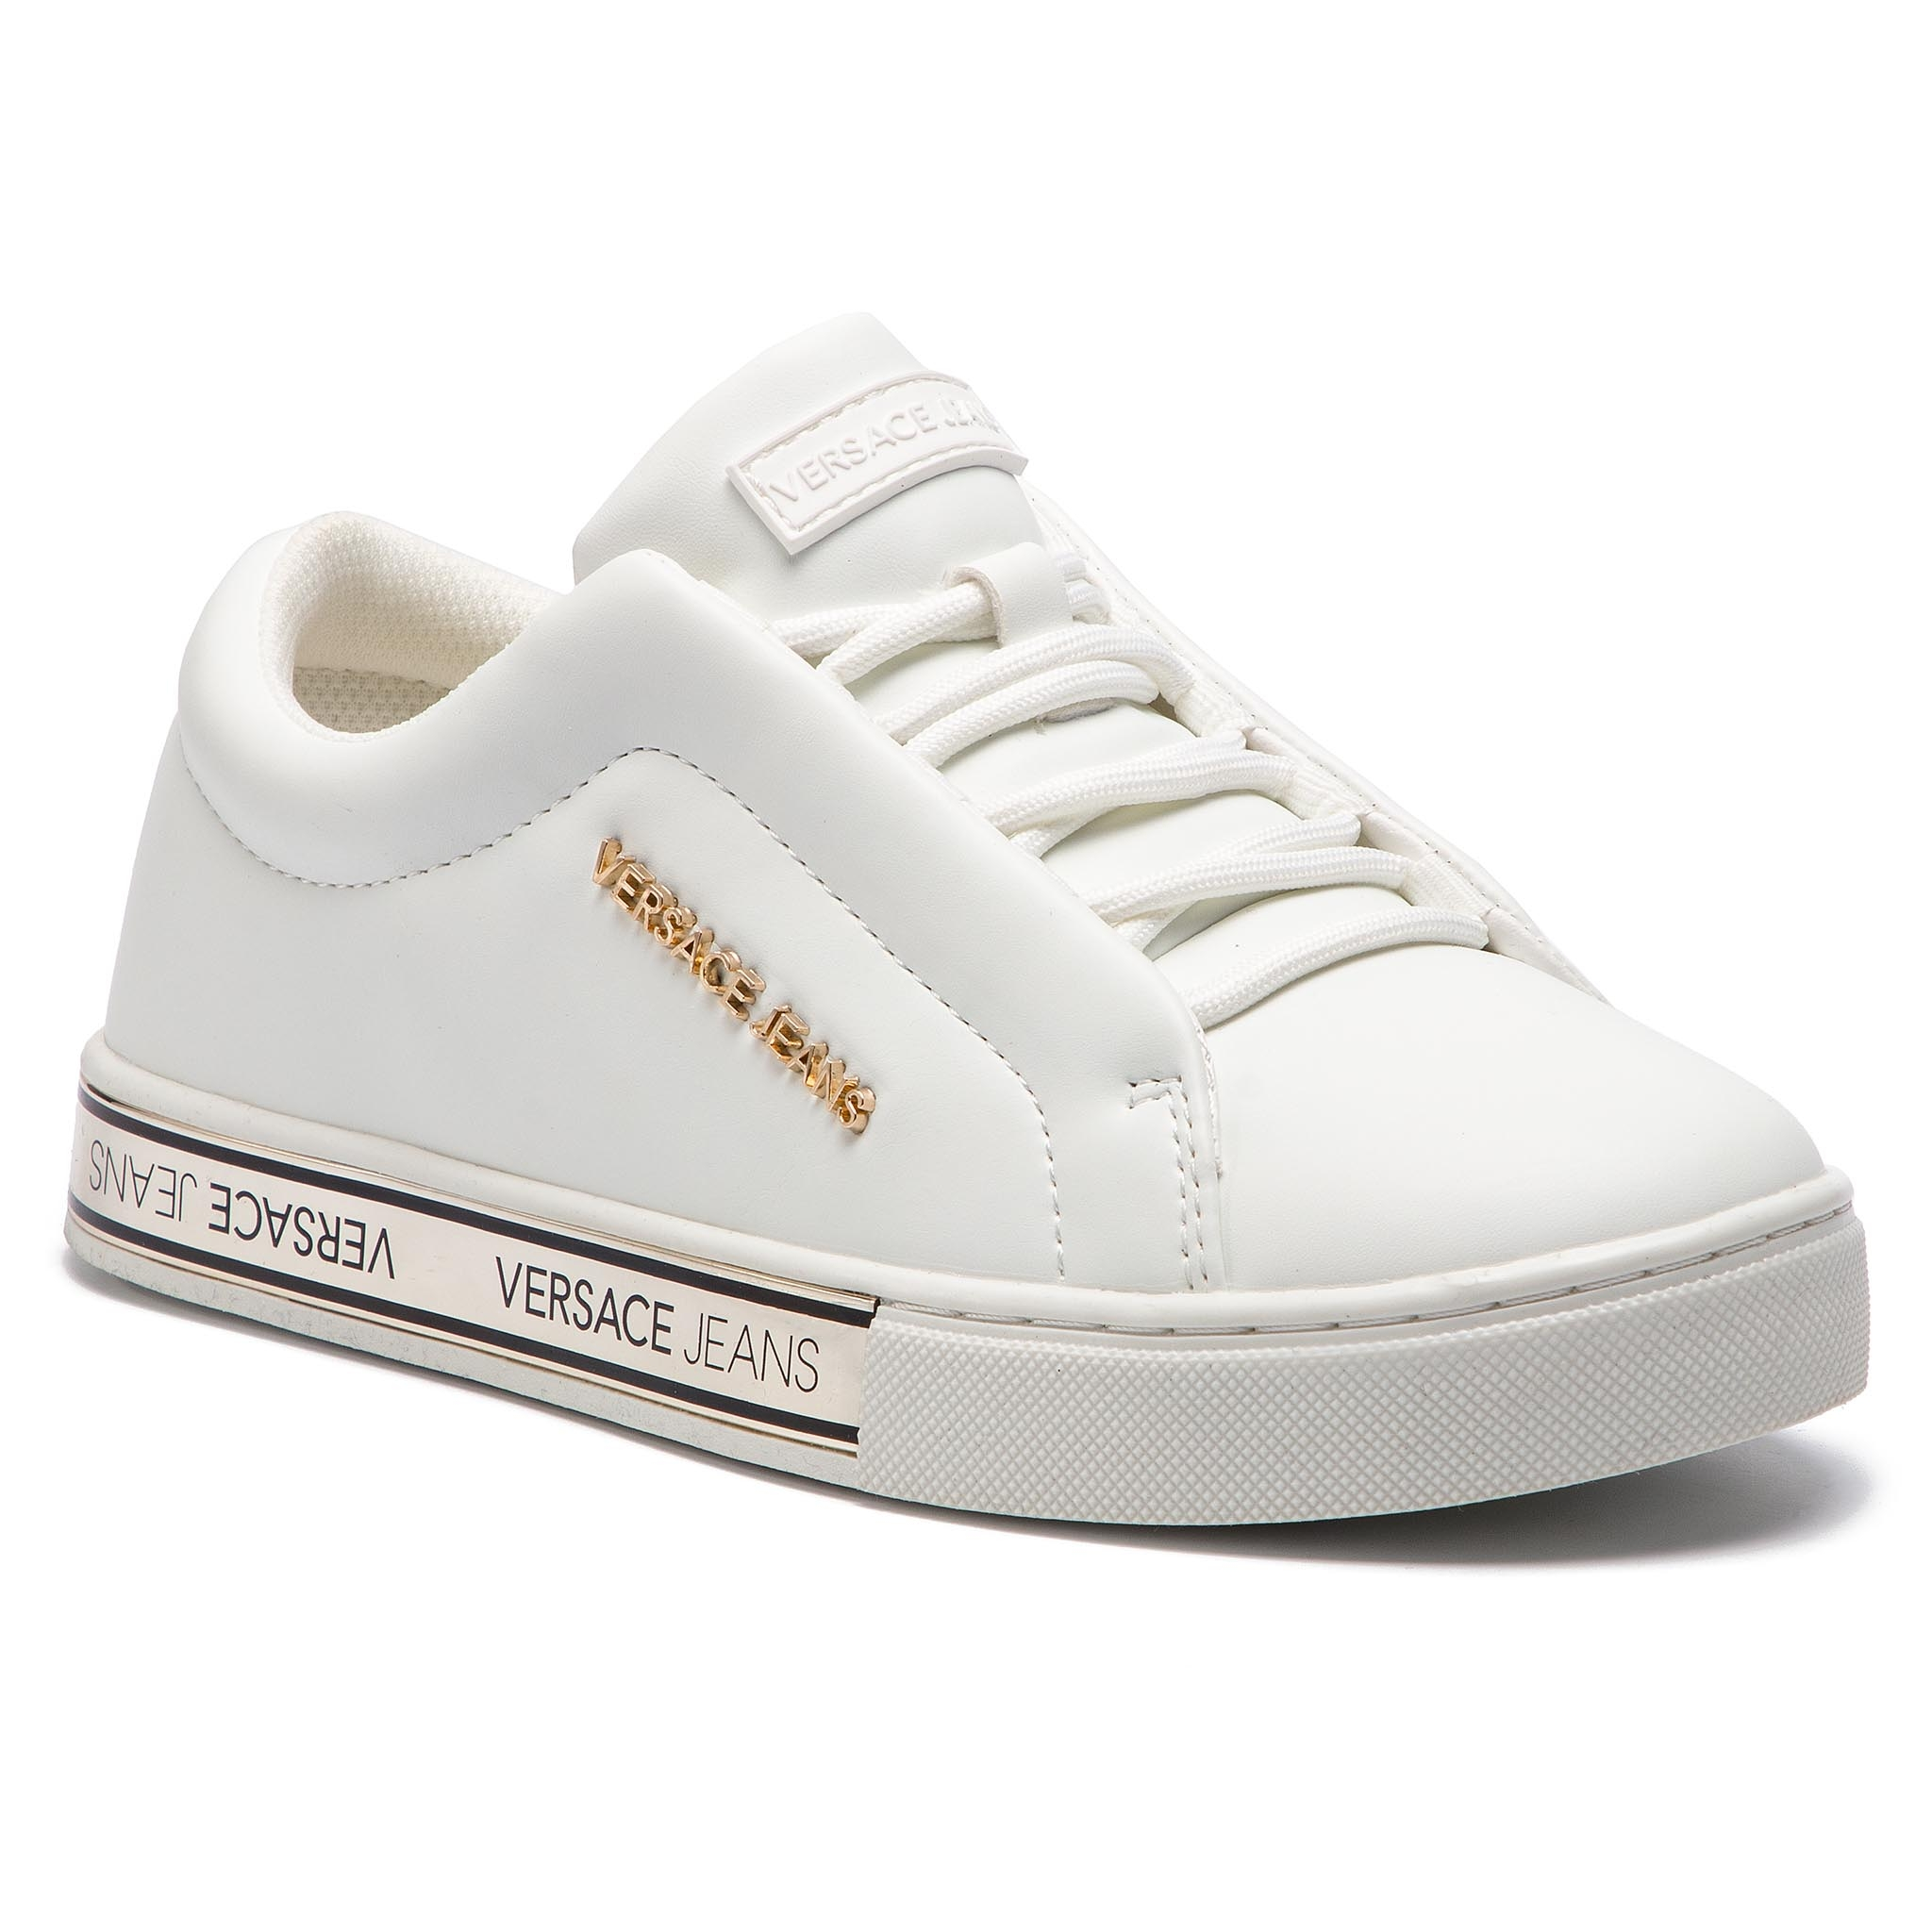 Sneakers VERSACE JEANS - E0VTBSO3 70978 003